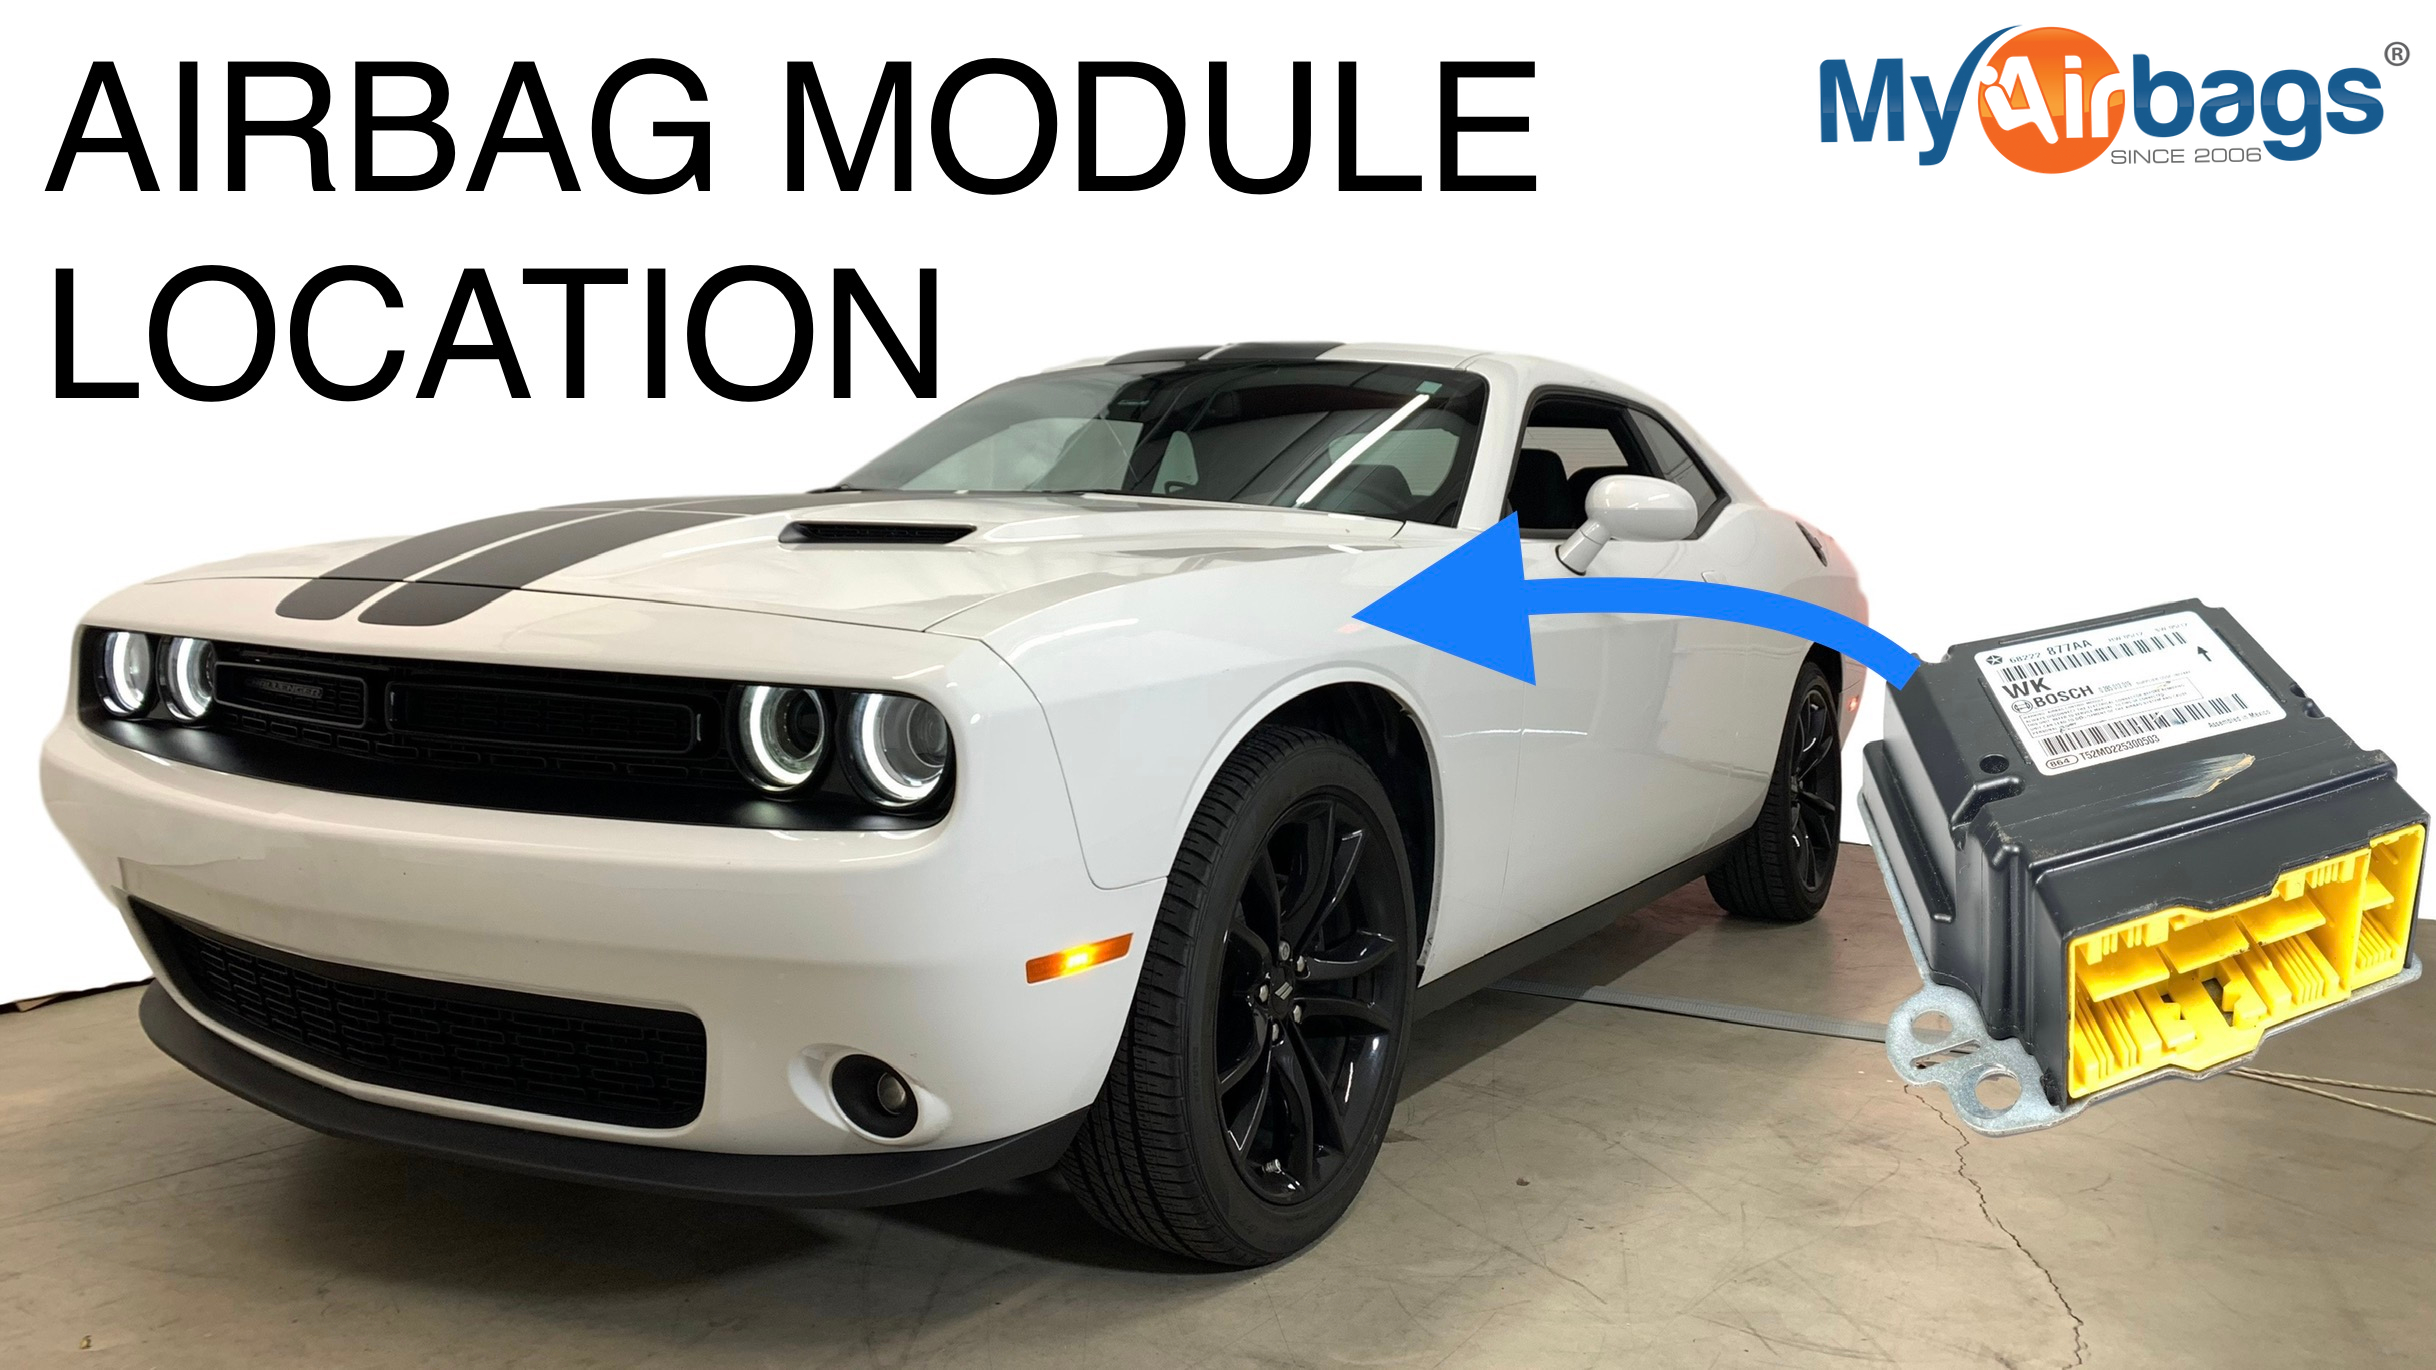 hight resolution of srs airbag control module removal instructions video myairbags jeep liberty airbag control module location free download wiring